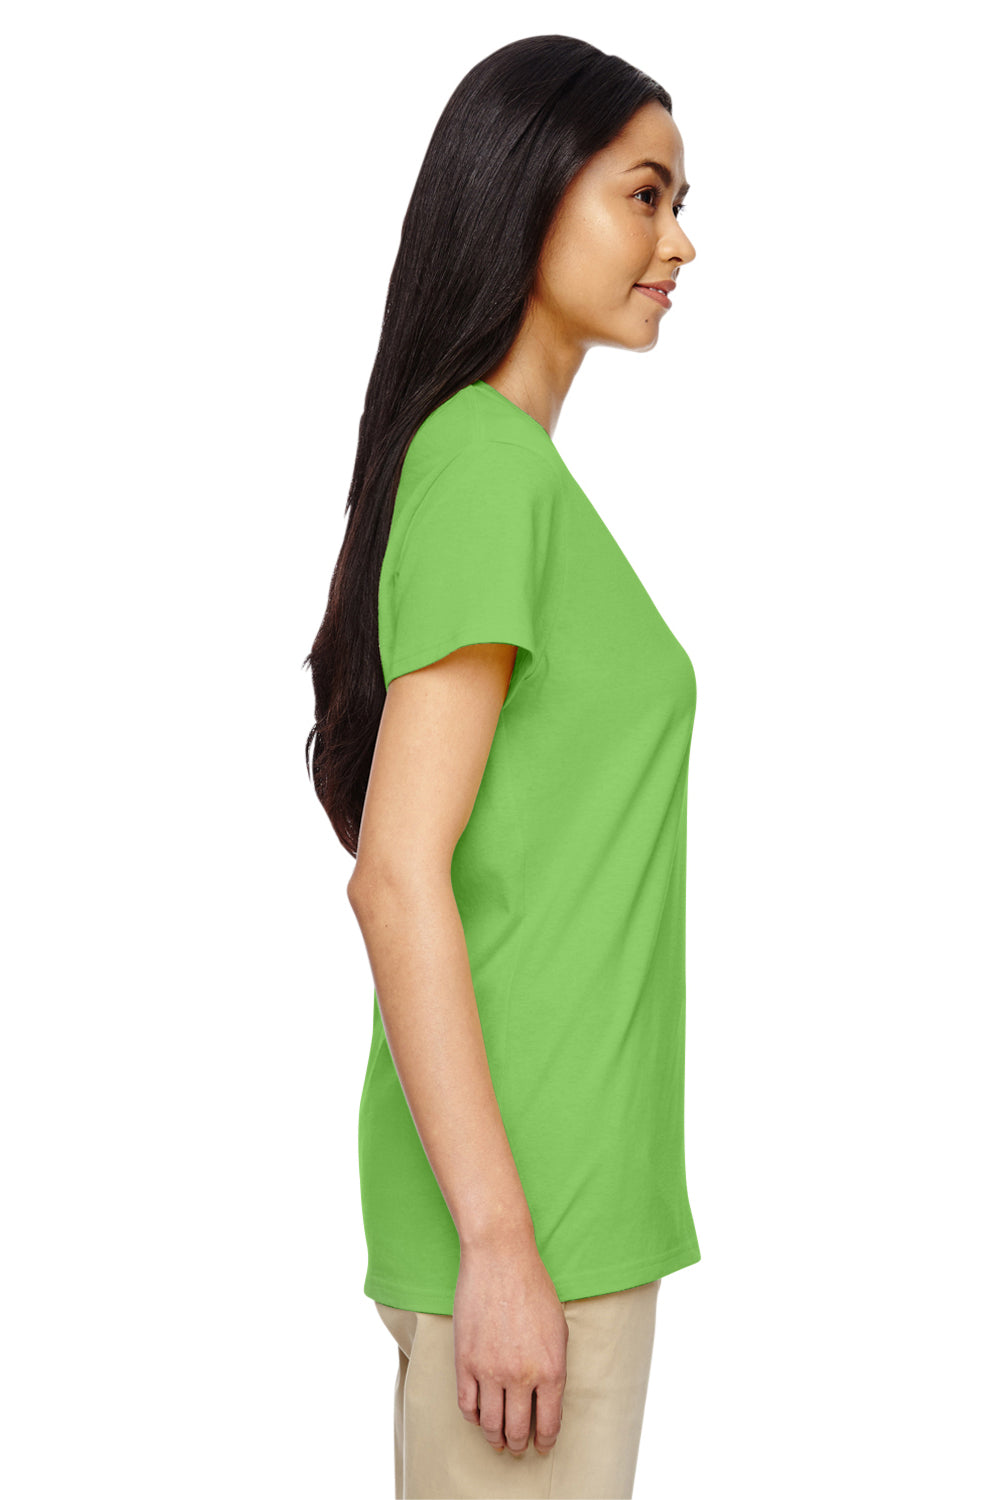 Gildan G500VL Womens Short Sleeve V-Neck T-Shirt Lime Green Side